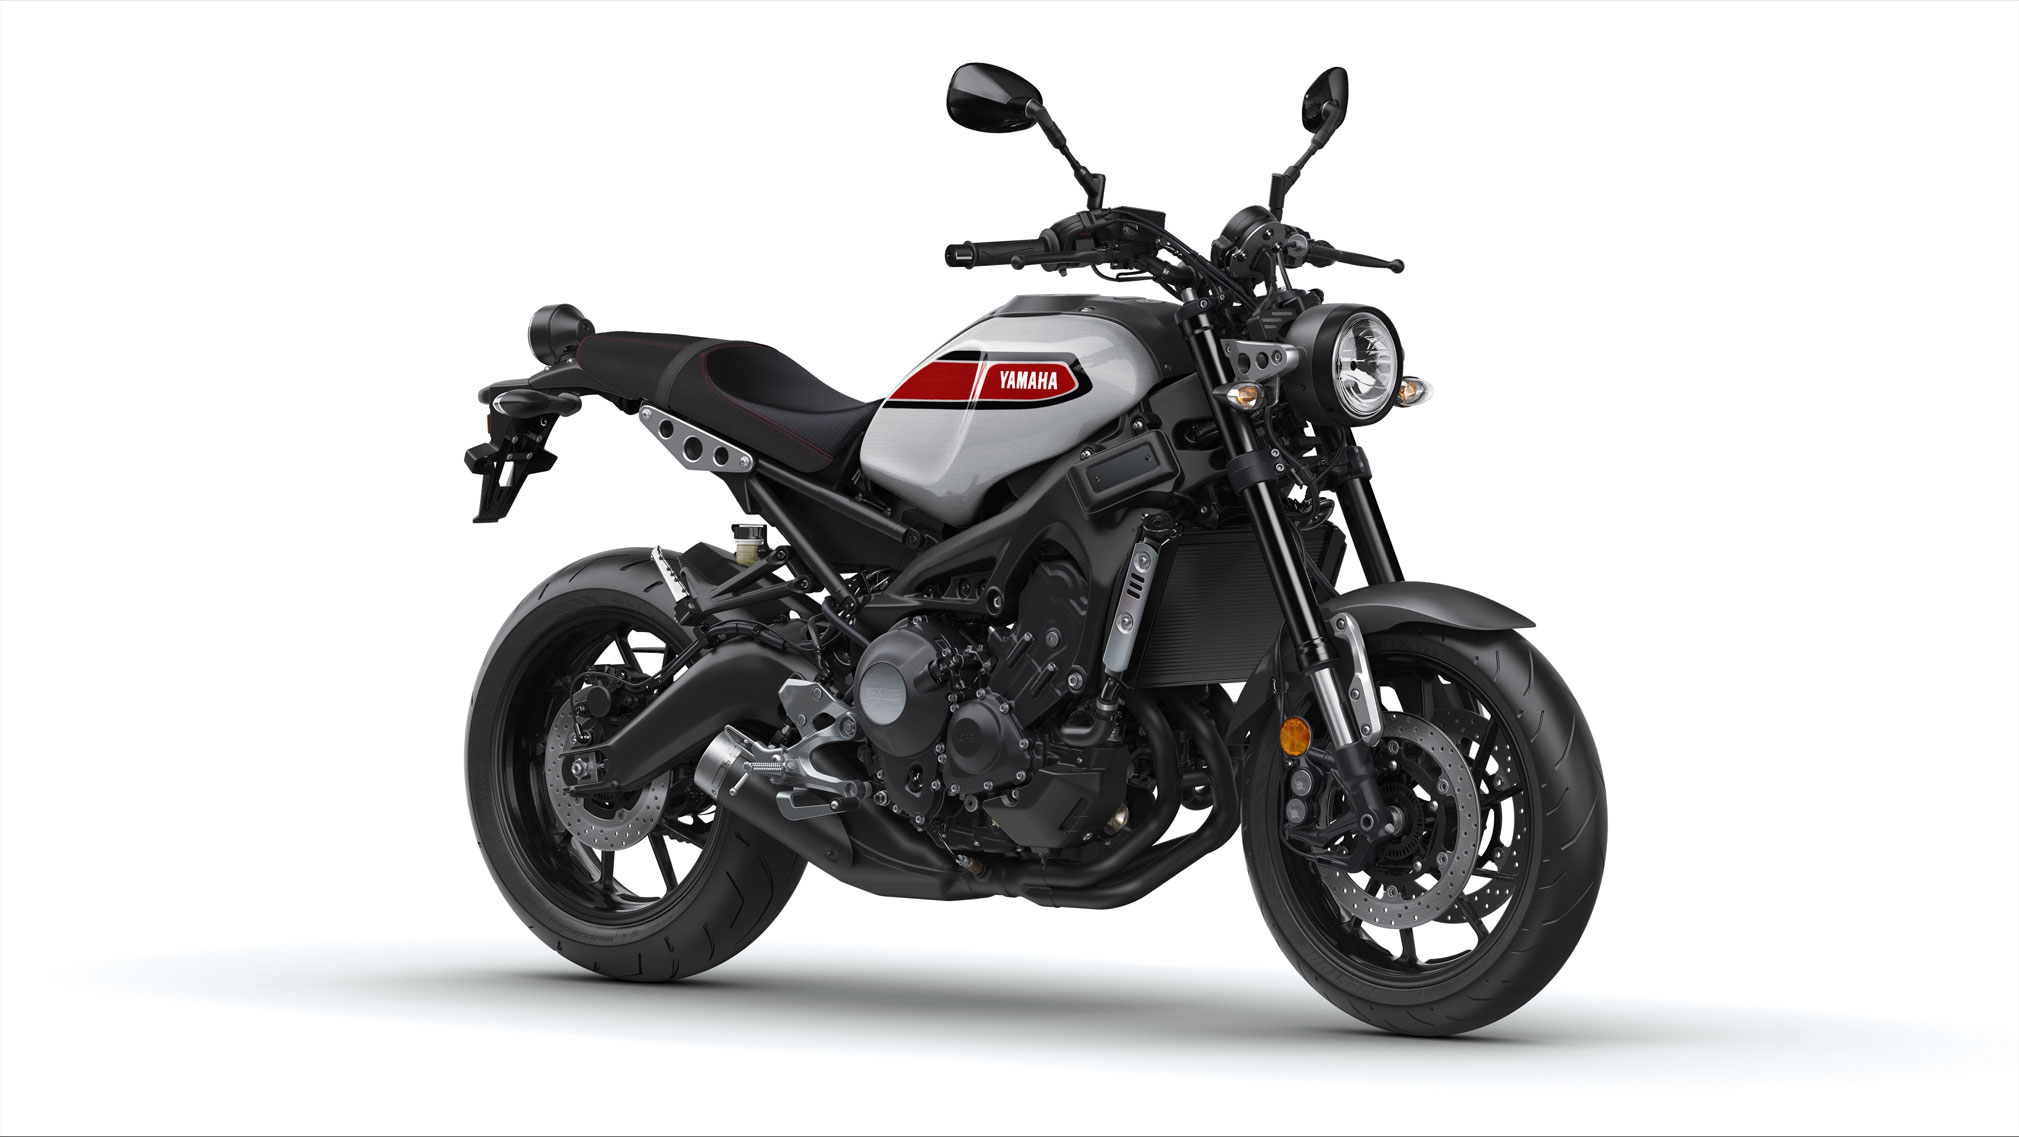 2019 yamaha xsr900 guide totalmotorcycle. Black Bedroom Furniture Sets. Home Design Ideas